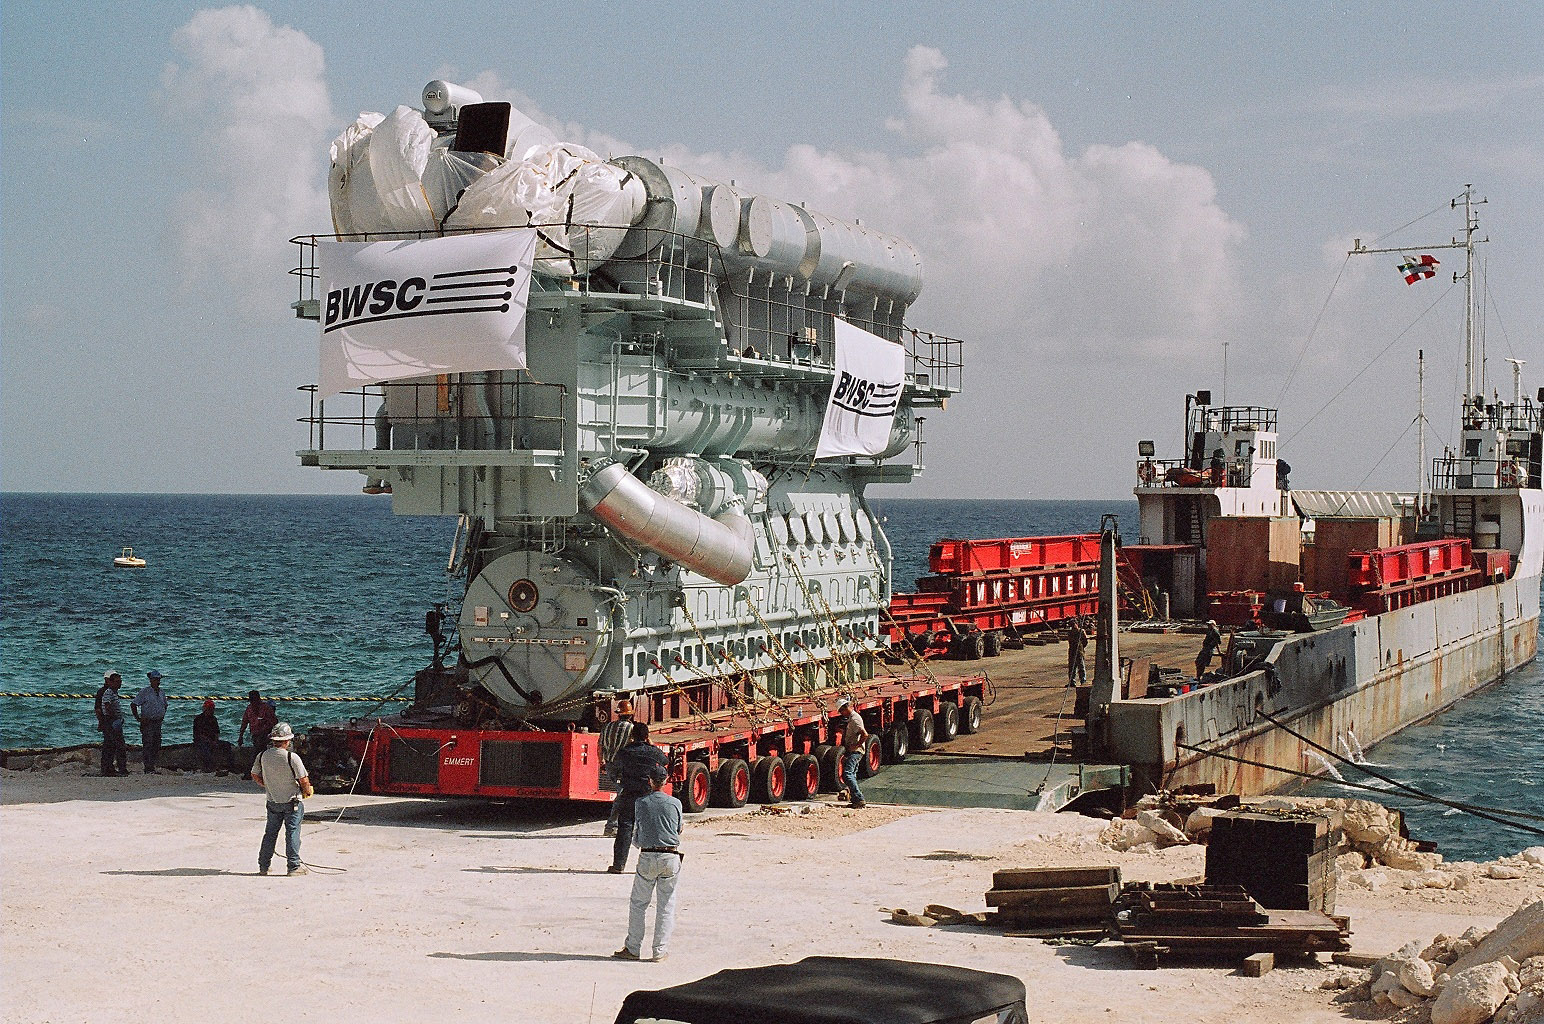 MAN B&W Engines to Drive Cypriot Power Plant